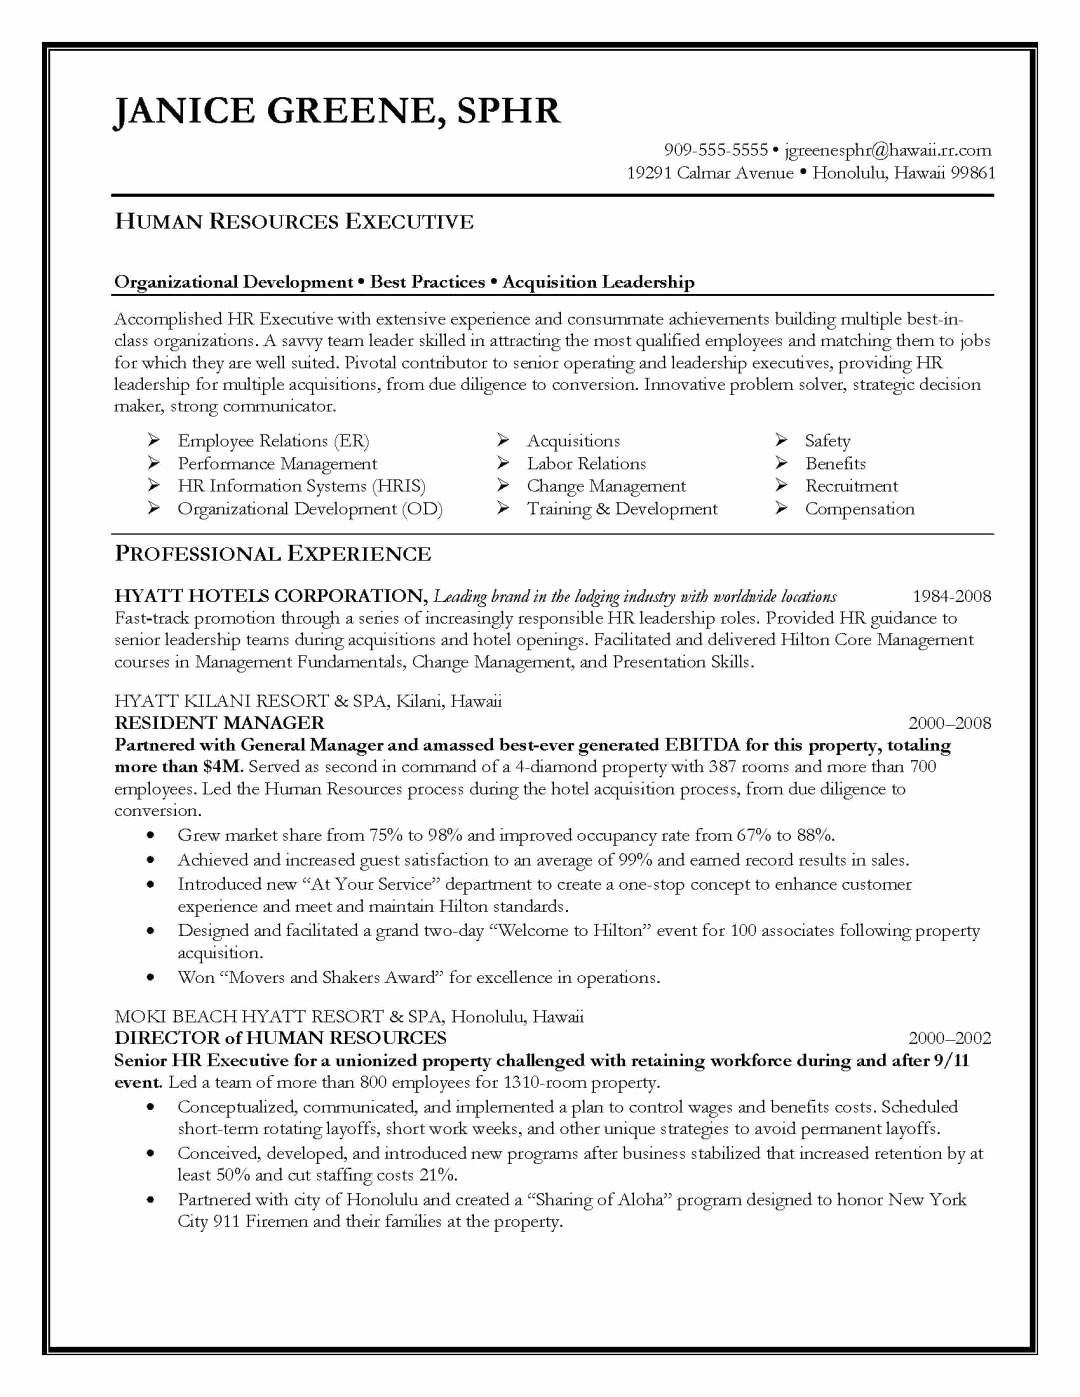 Human Resource Resume Template Awesome Resume Samples Elite Resume Writing